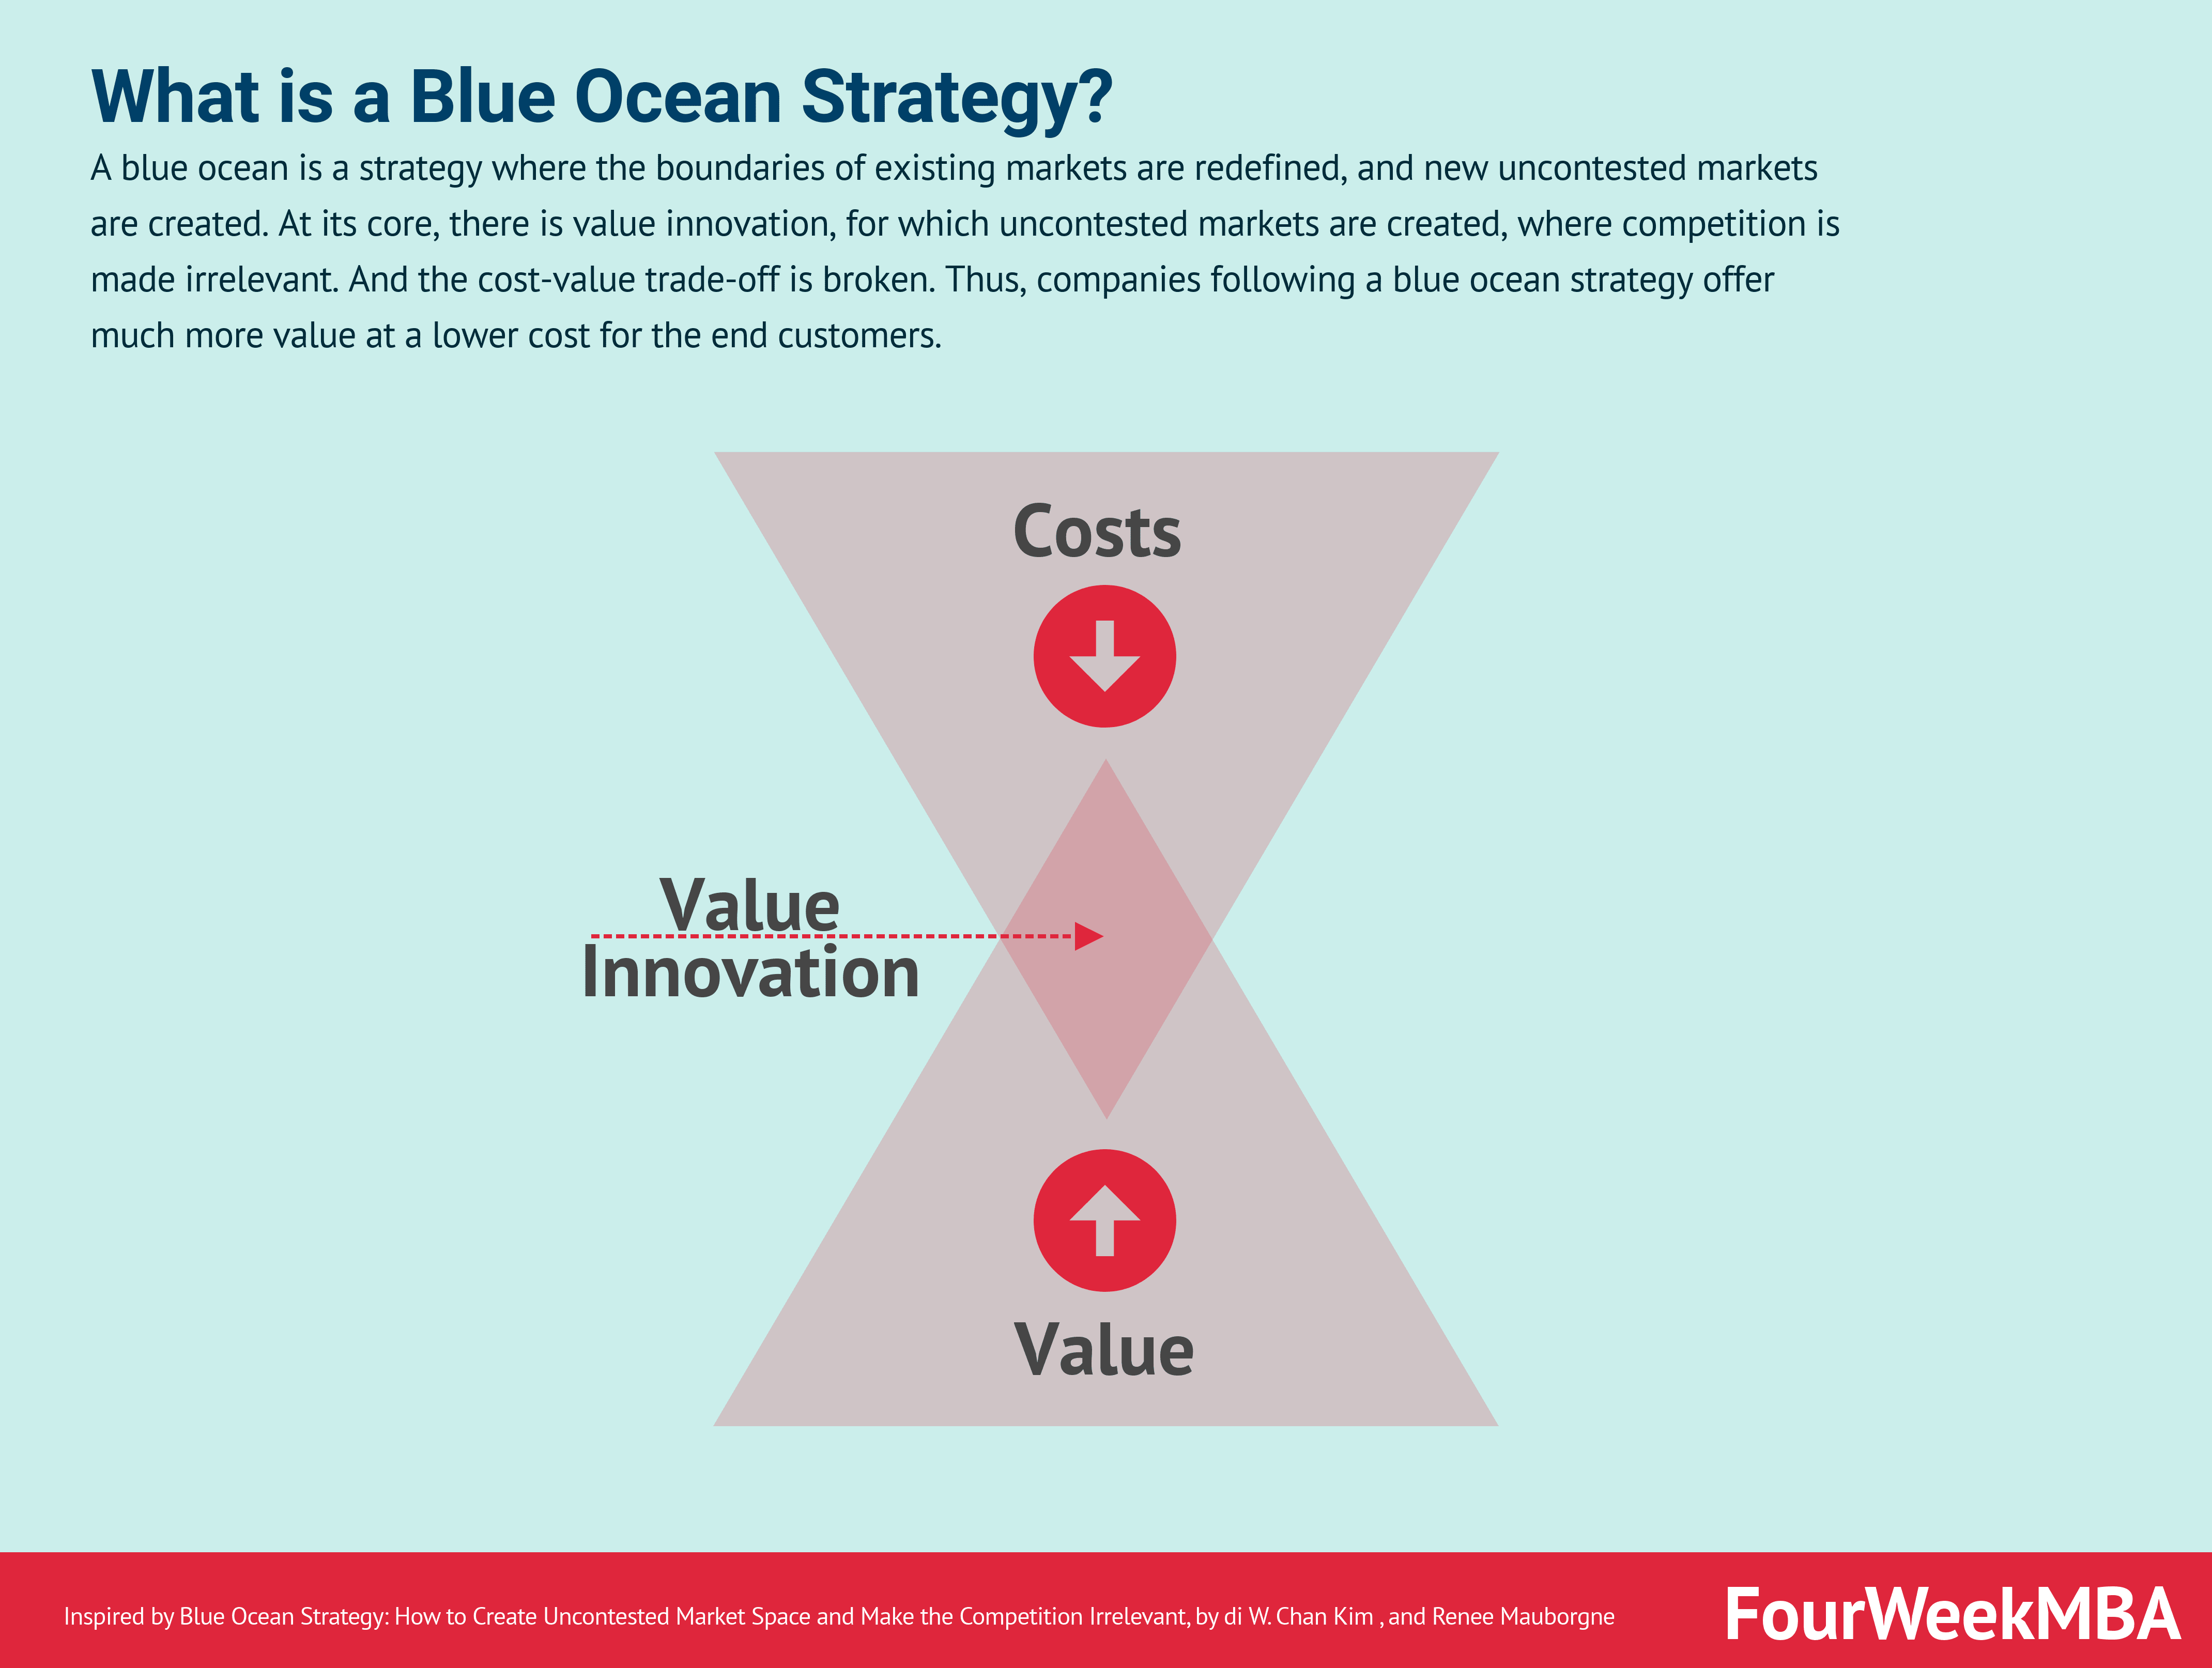 Blue Ocean Strategy: Value Innovation To Create An Uncontested Market